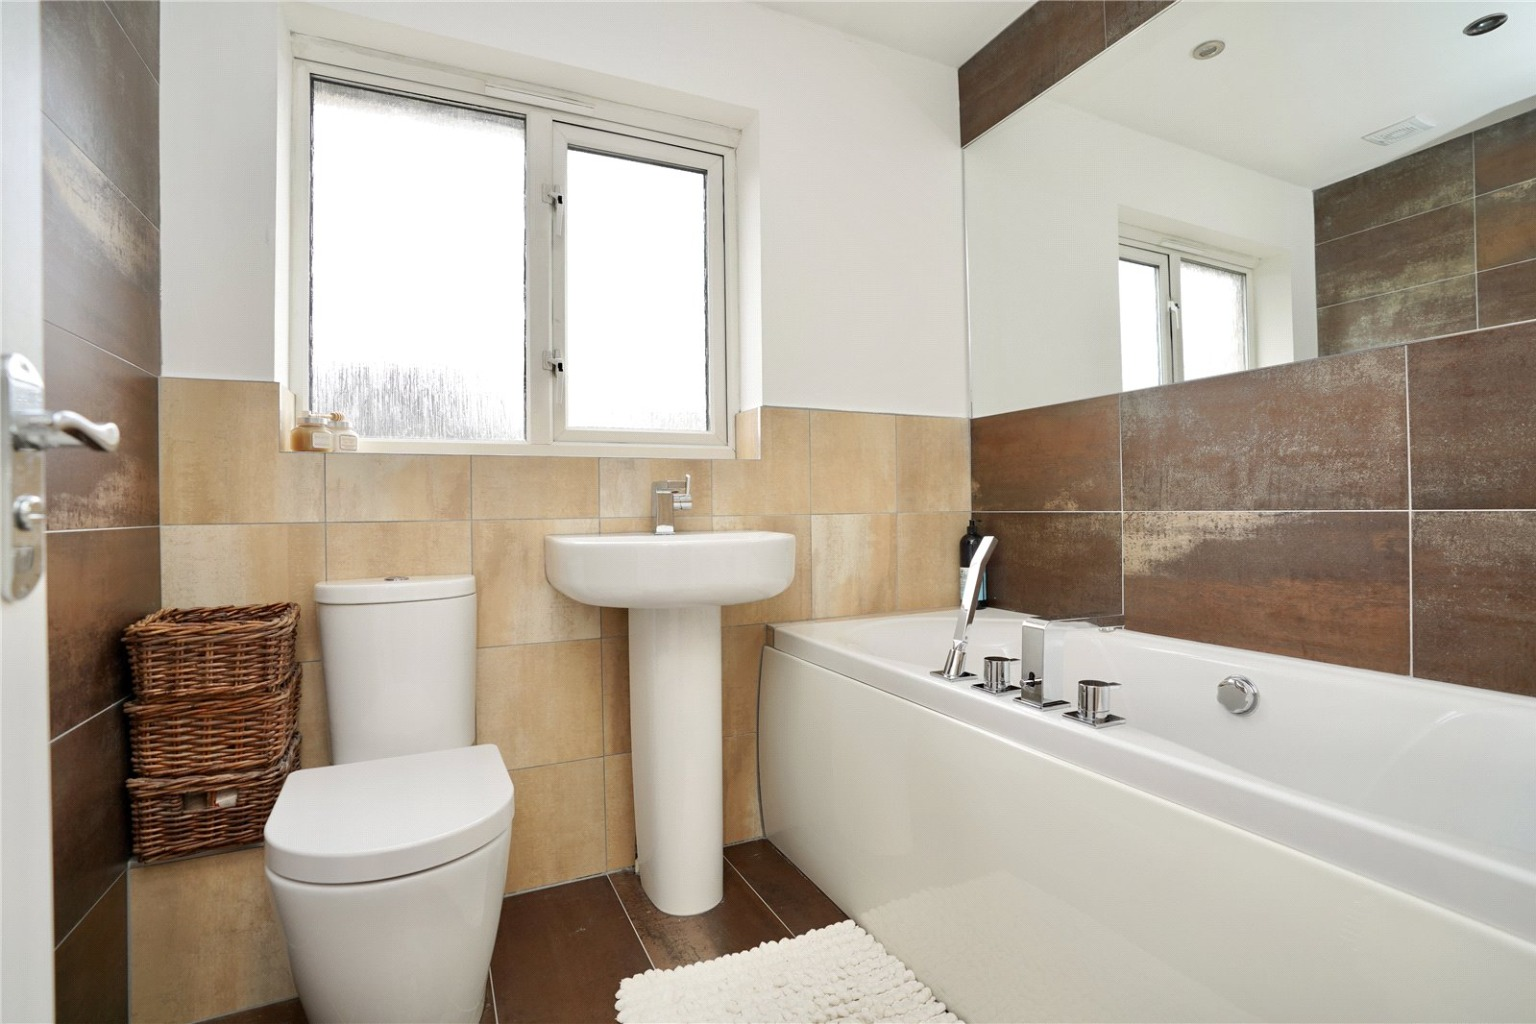 3 bed detached house for sale in Chamberlain Way, St. Neots  - Property Image 11